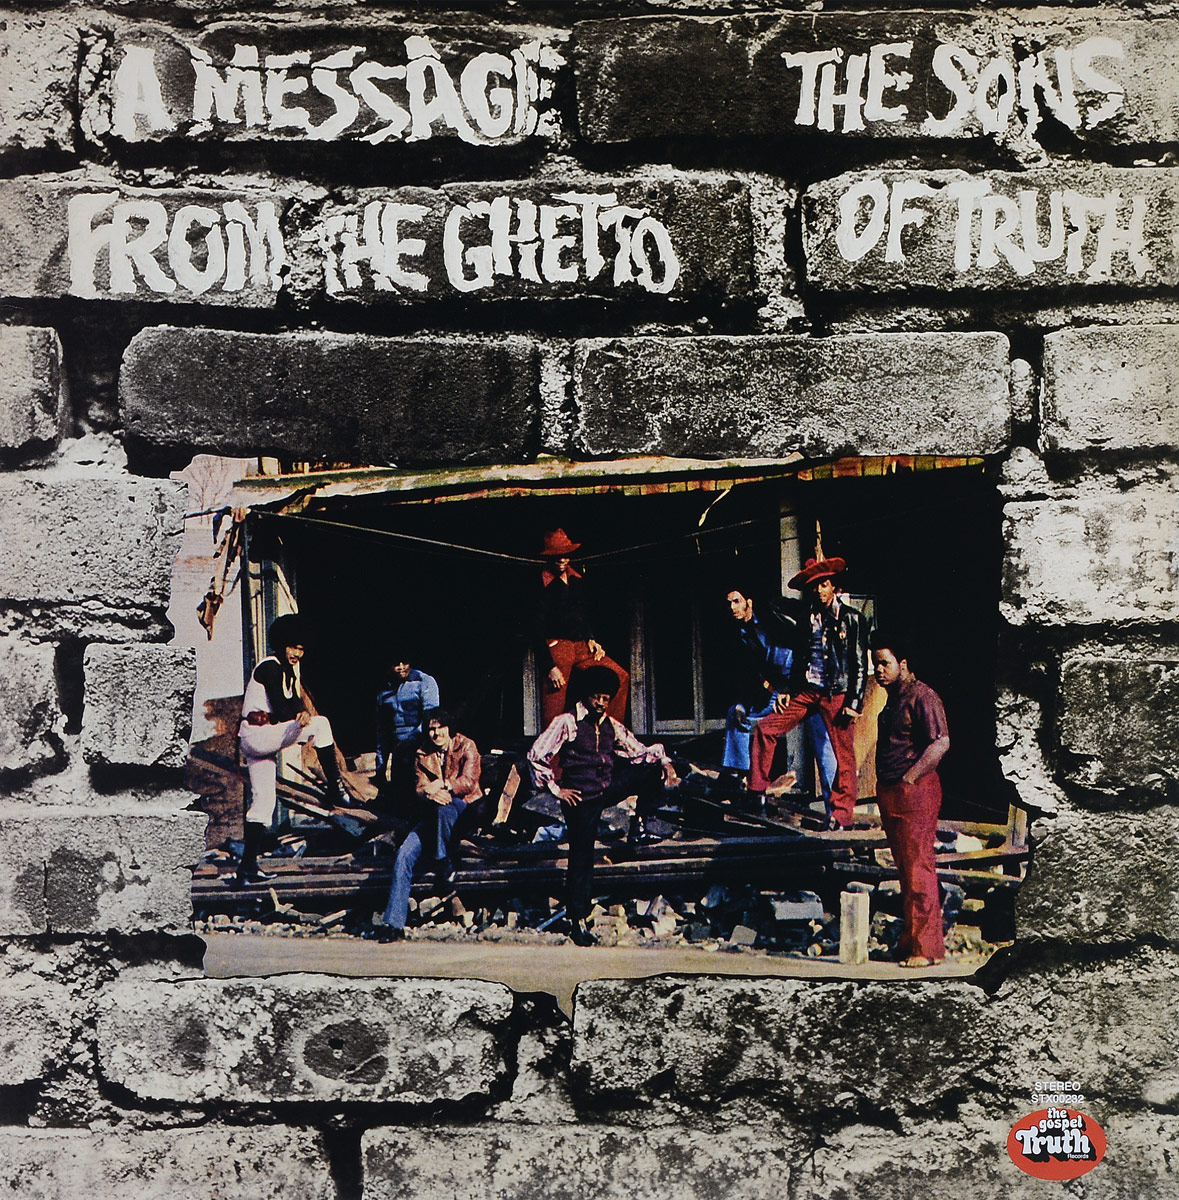 The Sons Of Truth The Sons Of Truth. A Message From The Ghetto (LP)